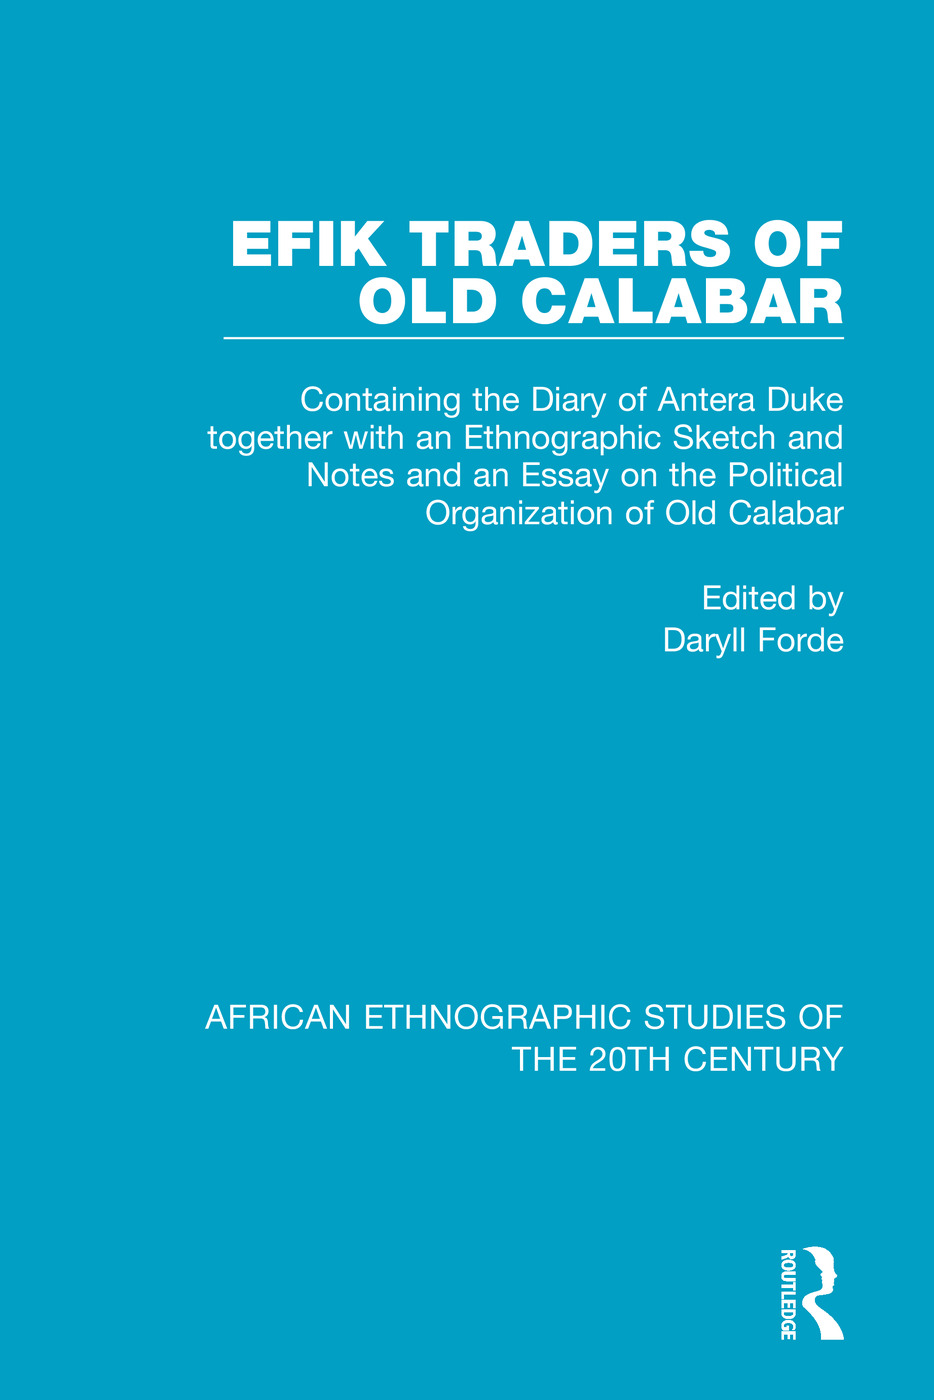 Efik Traders of Old Calabar: Containing the Diary of Antera Duke together with an Ethnographic Sketch and Notes and an Essay on the Political Organization of Old Calabar, 1st Edition (Paperback) book cover